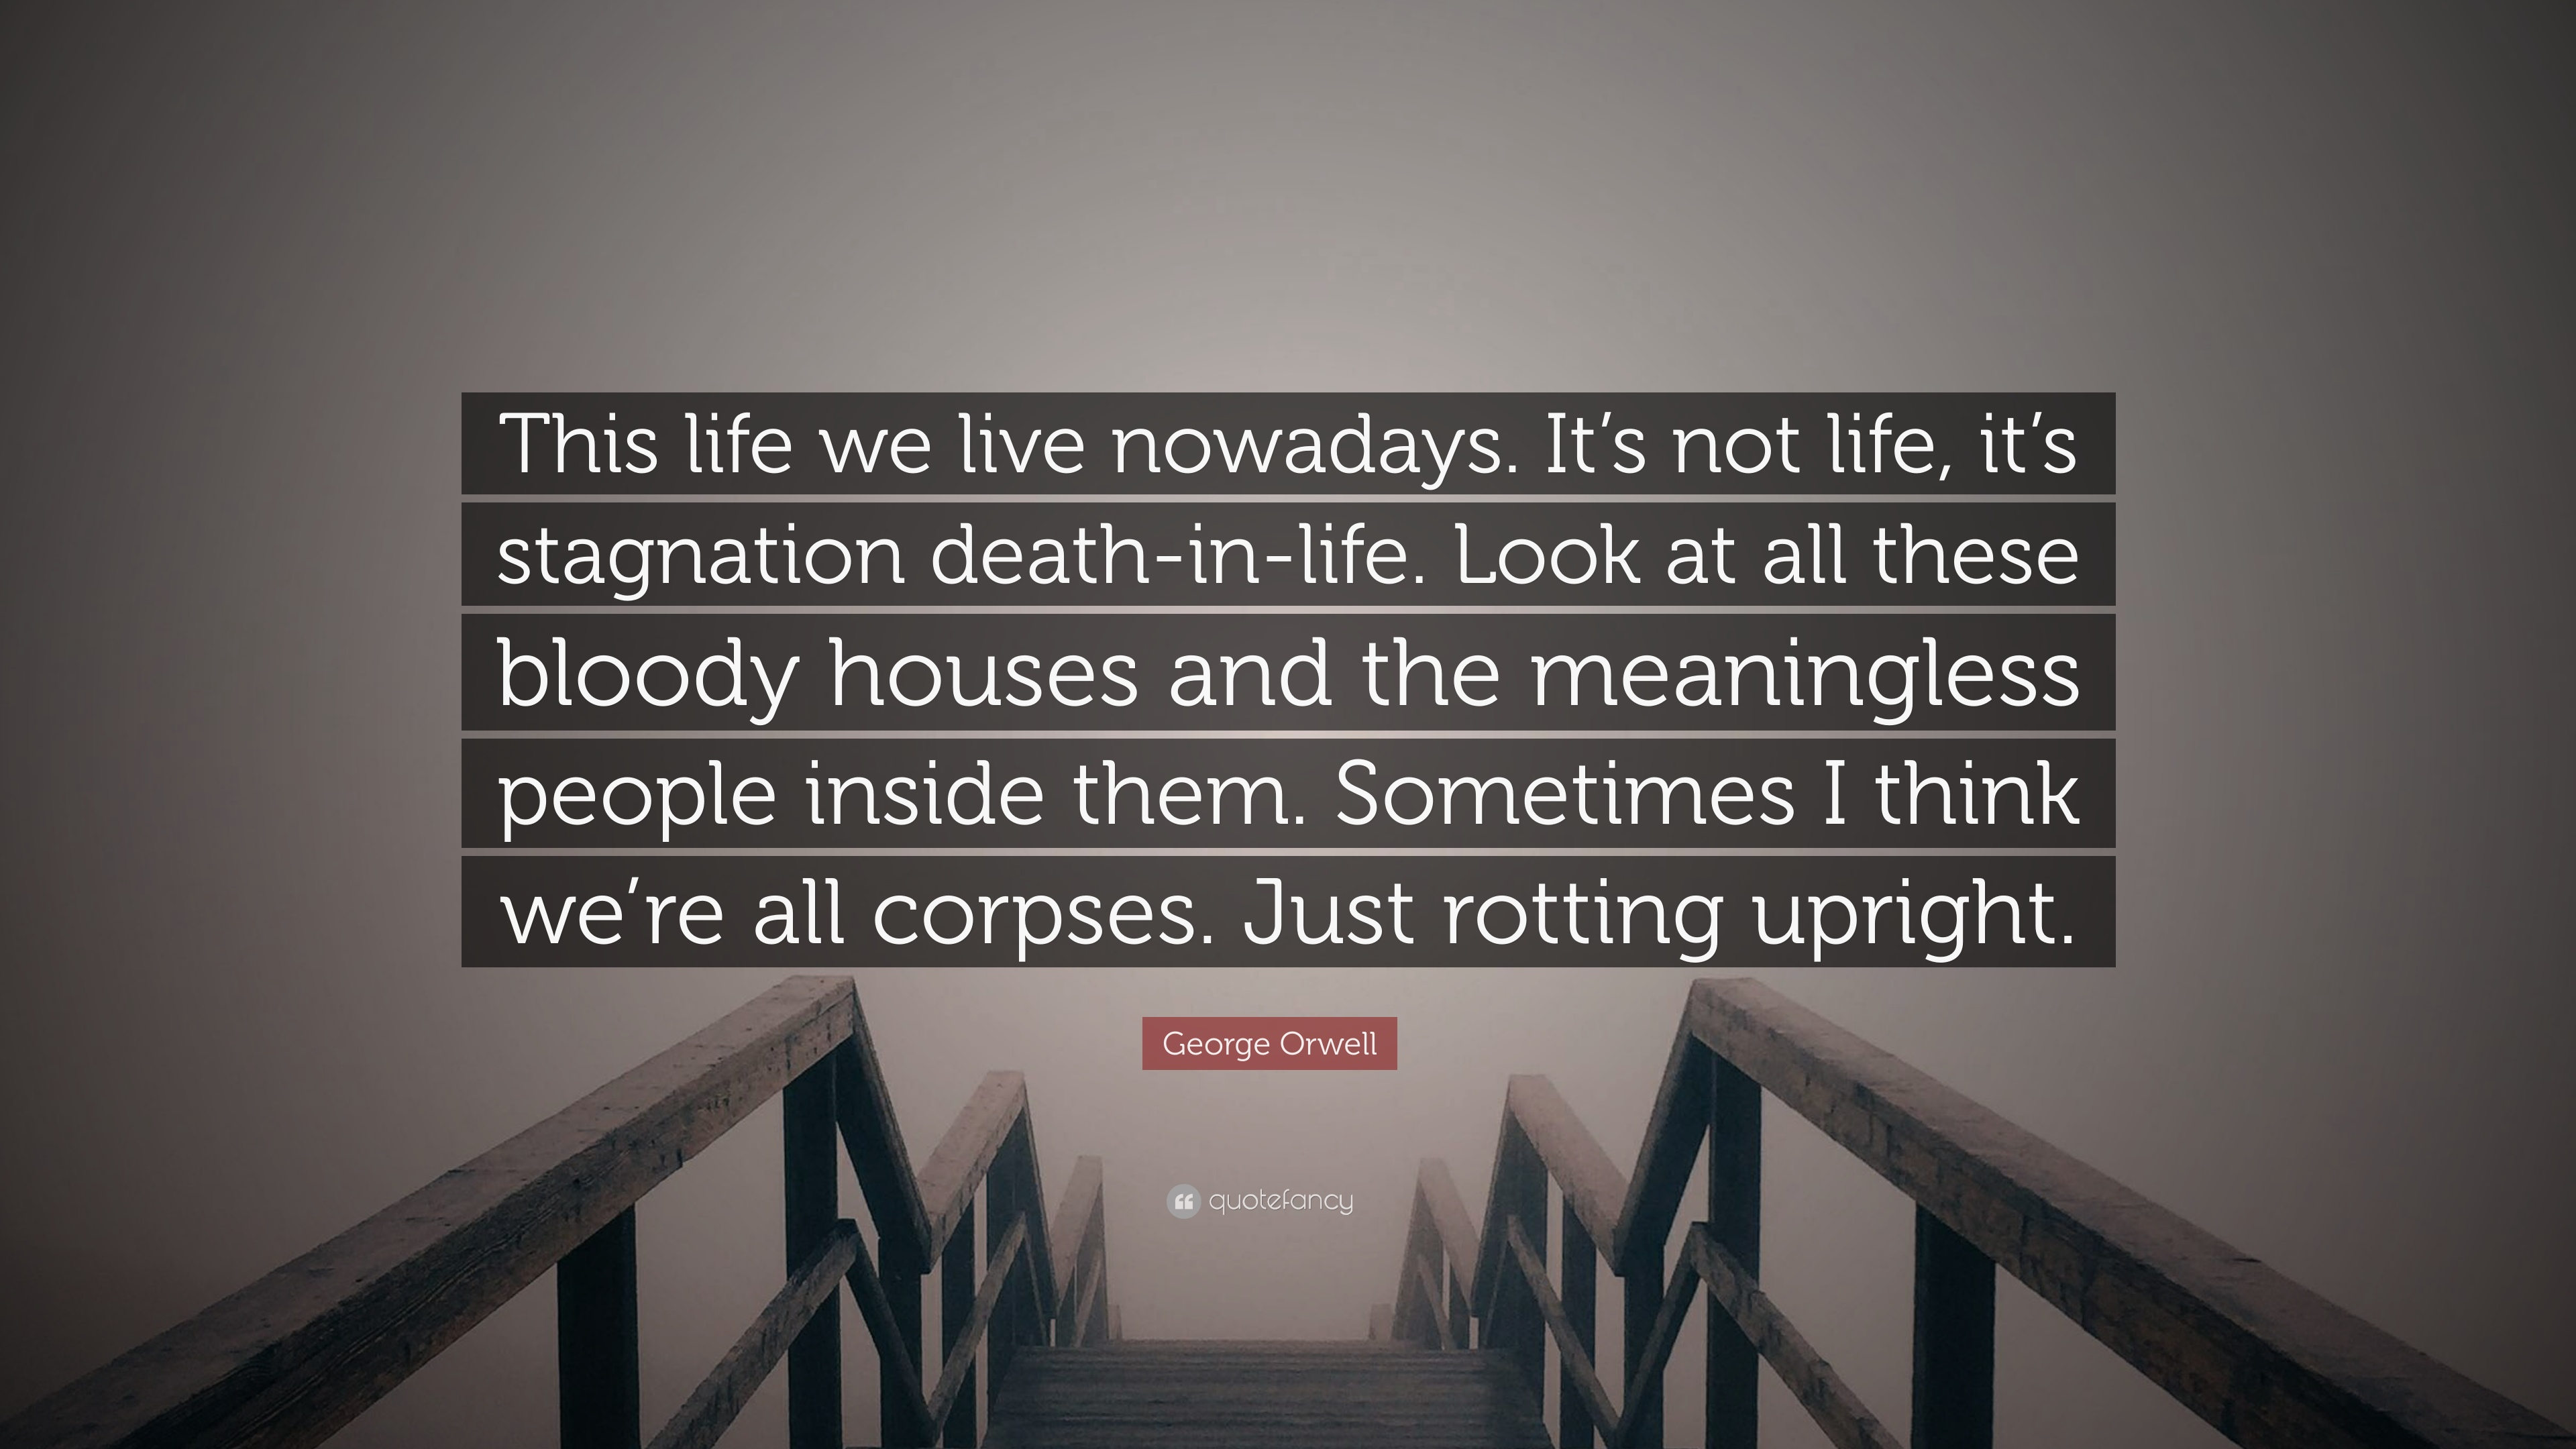 George orwell quote this life we live nowadays its not life george orwell quote this life we live nowadays its not life its altavistaventures Image collections